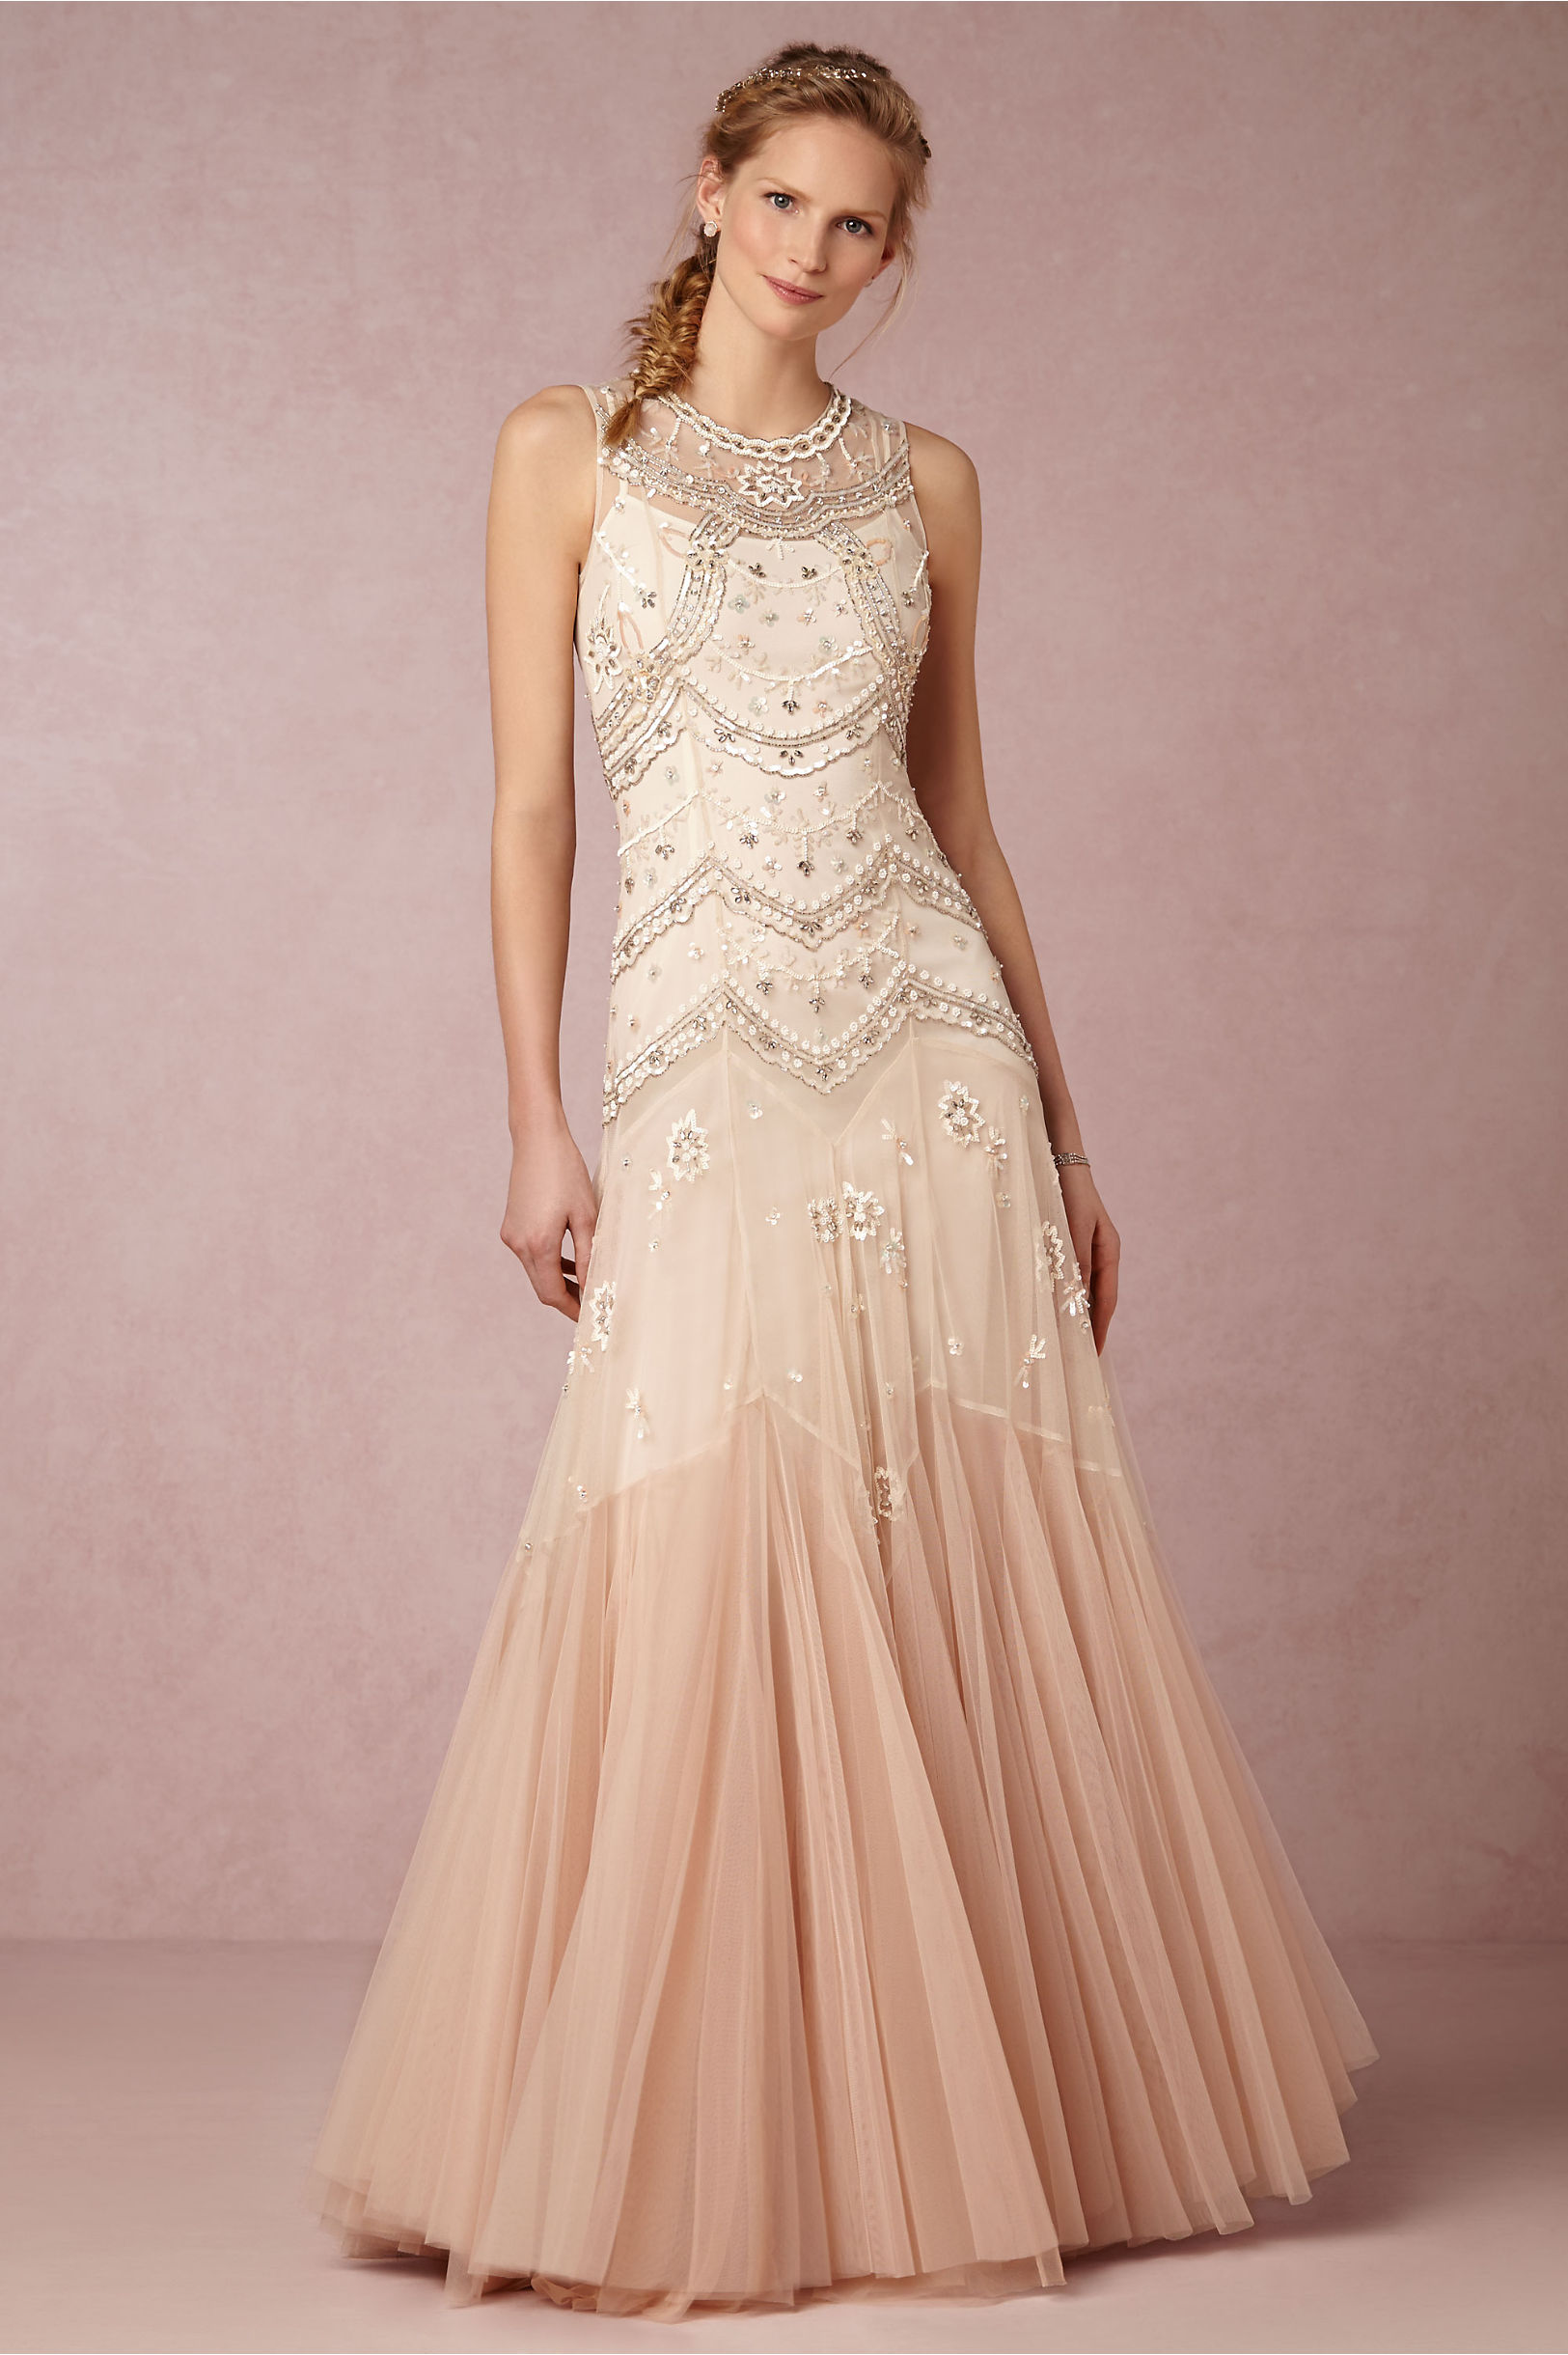 cate gown wedding gown Needle Thread Cream Dust Pink Cate Gown BHLDN